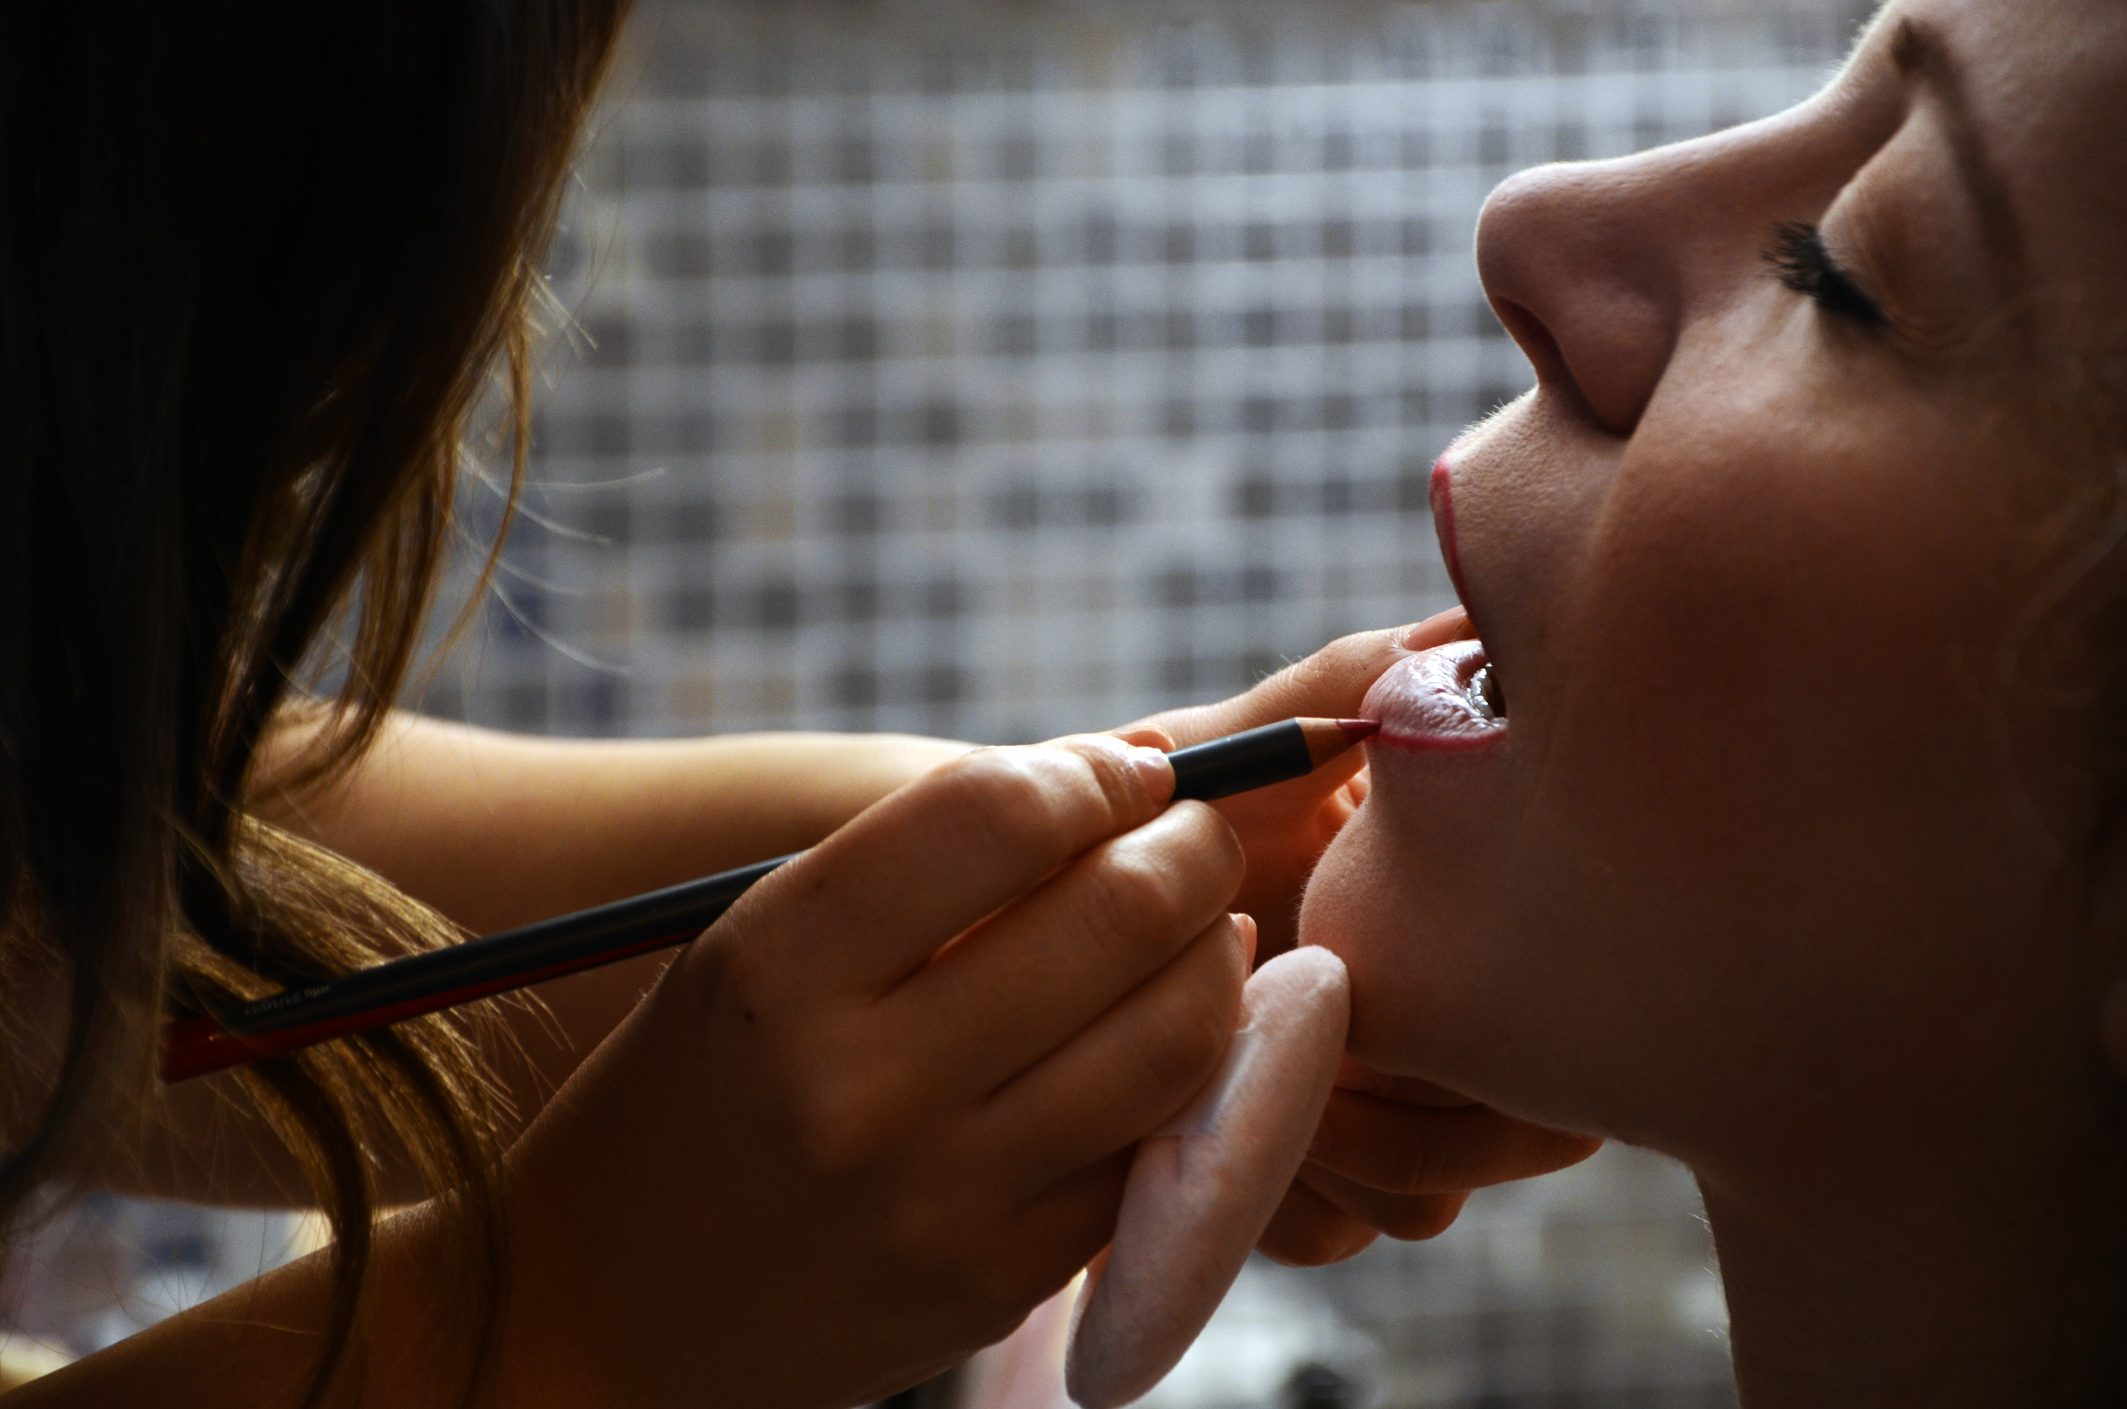 Midsection Of Make-Up Artist Applying Lip Liner To Woman In Spa